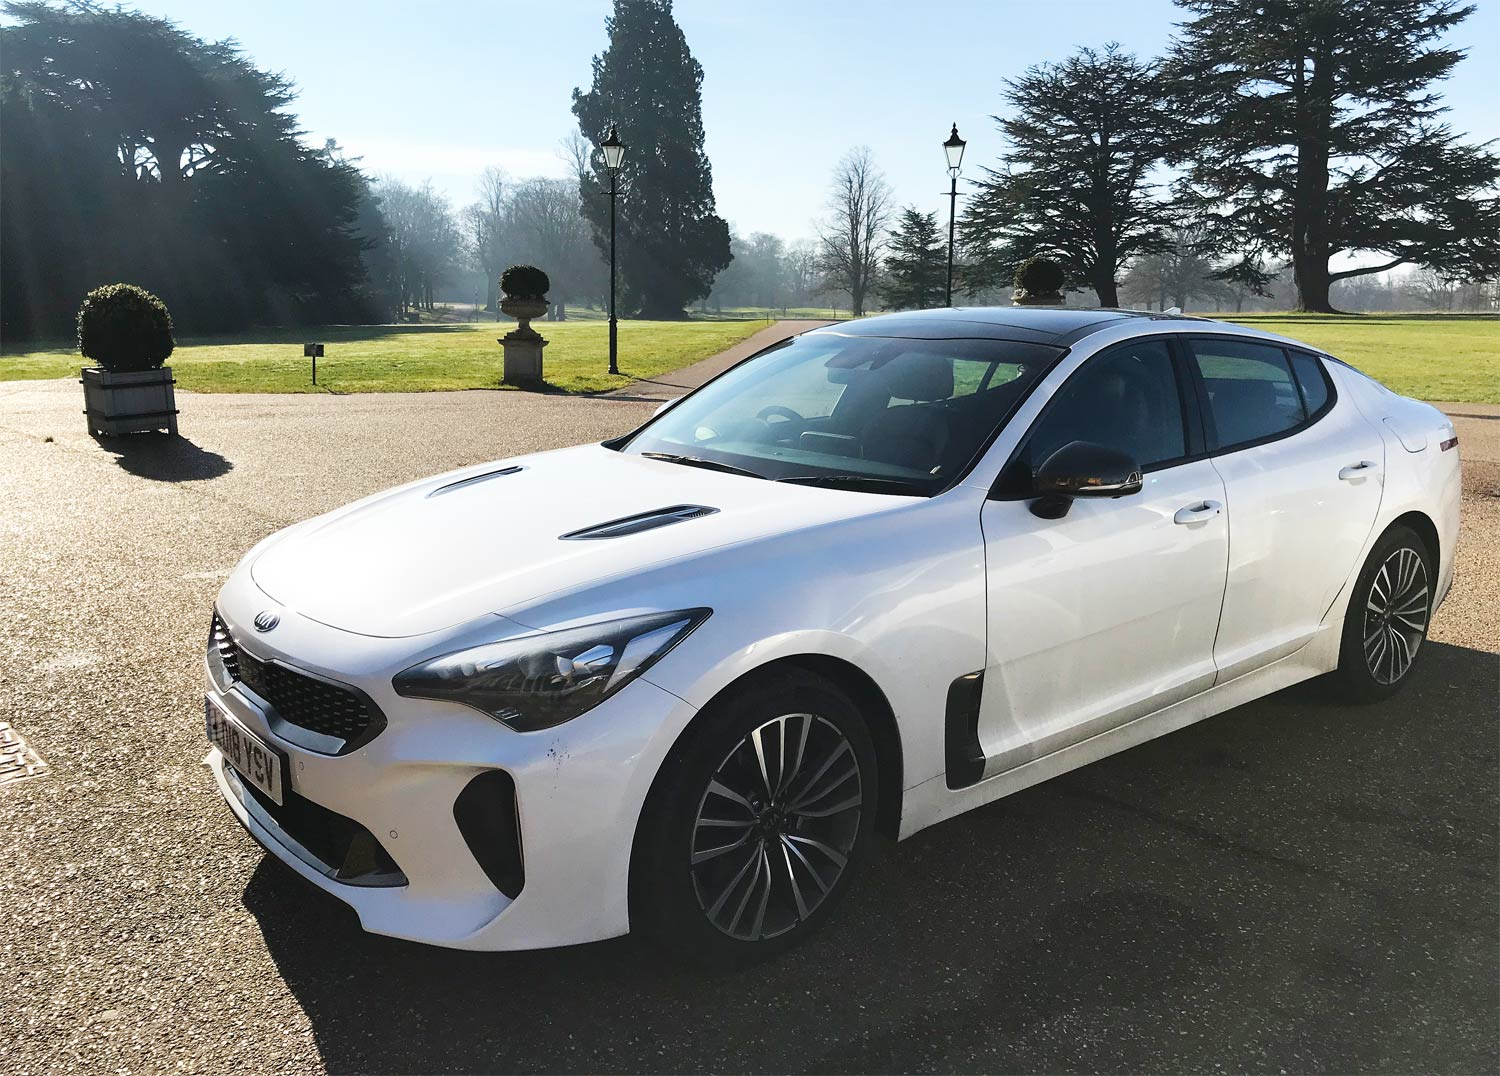 UK Road Test and Review of The KIA Stinger 2.0 T-GDi 'GT-Line' S 5